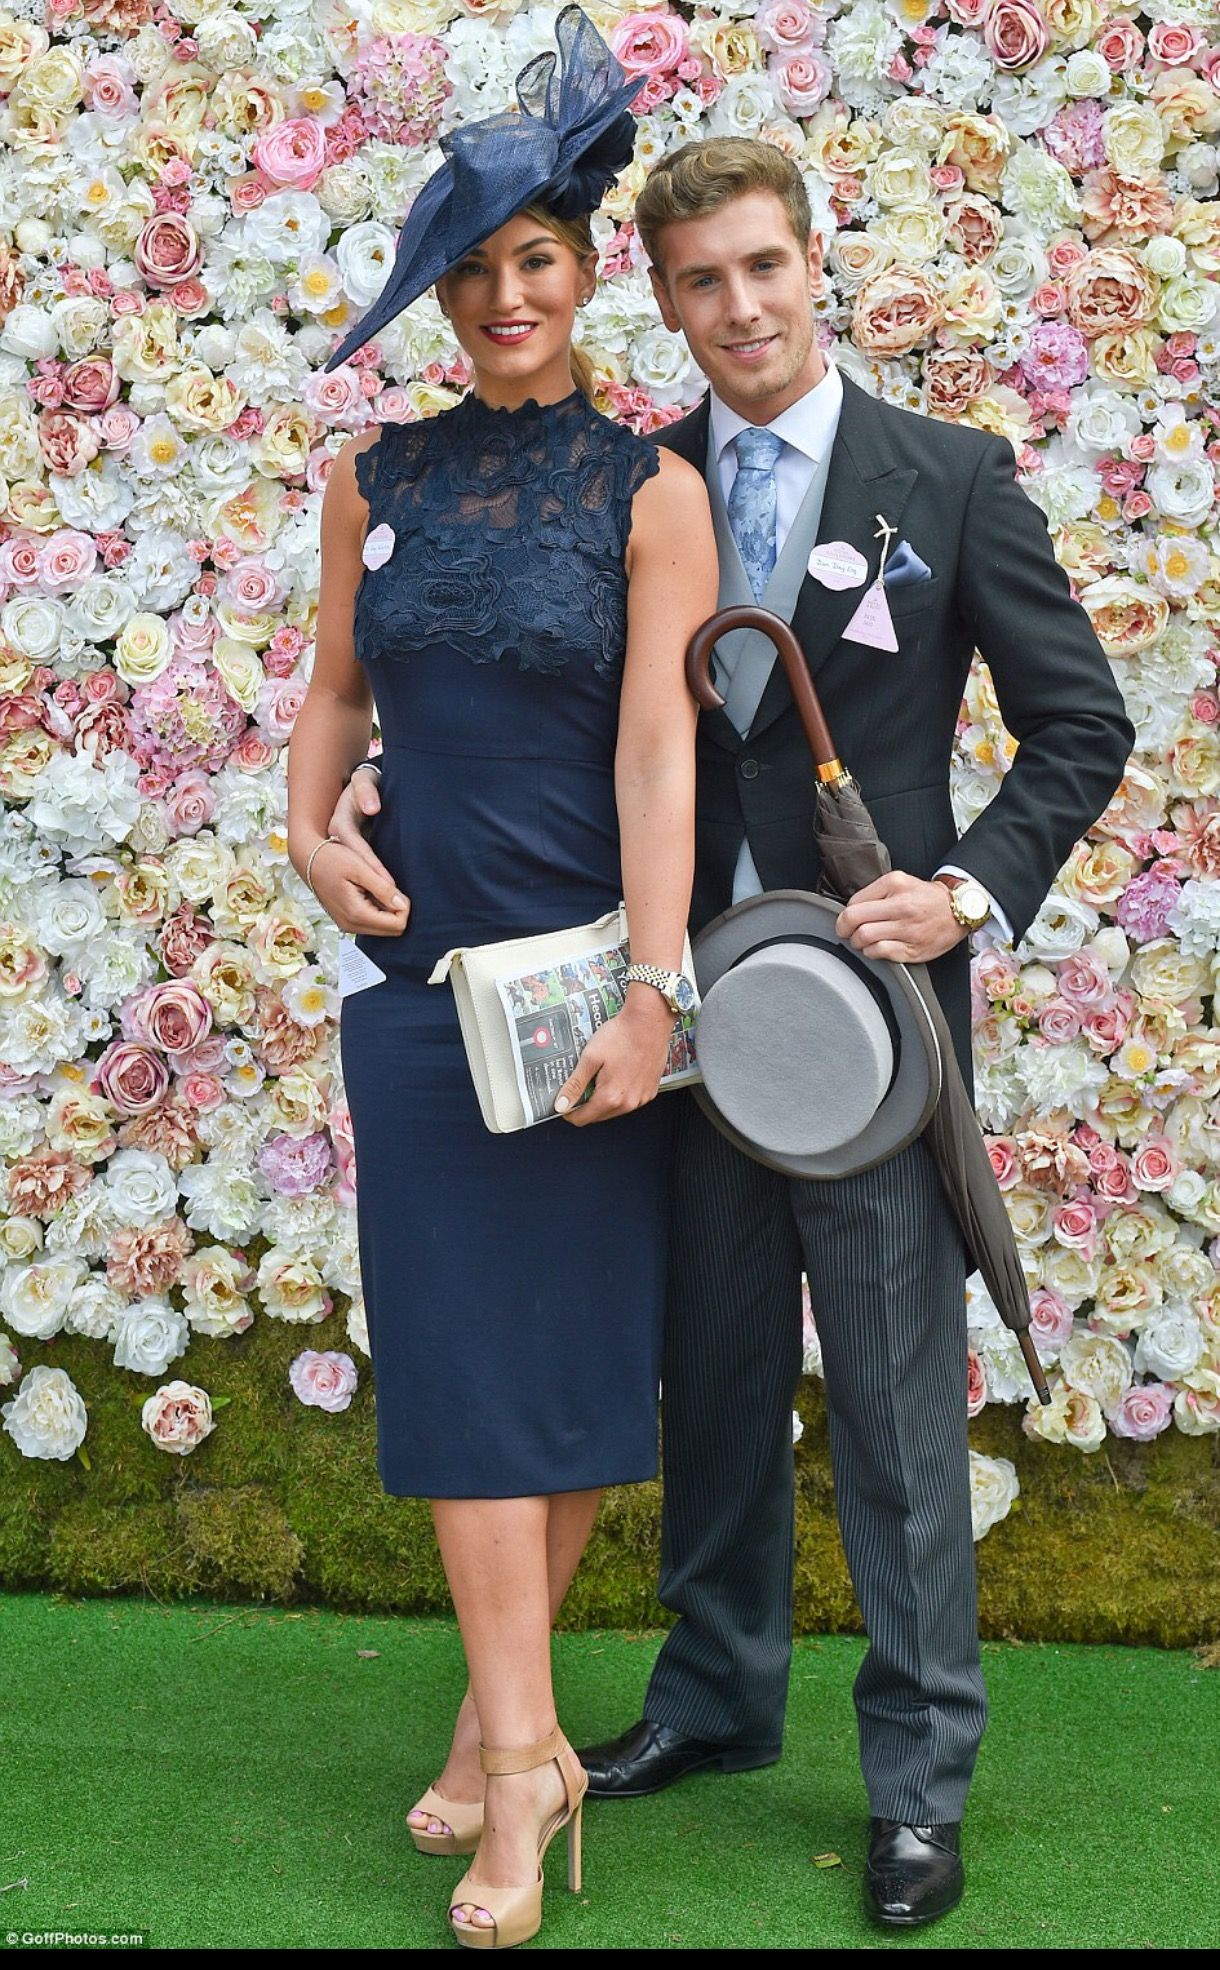 pinannie ross on my future wedding in 2019  ascot